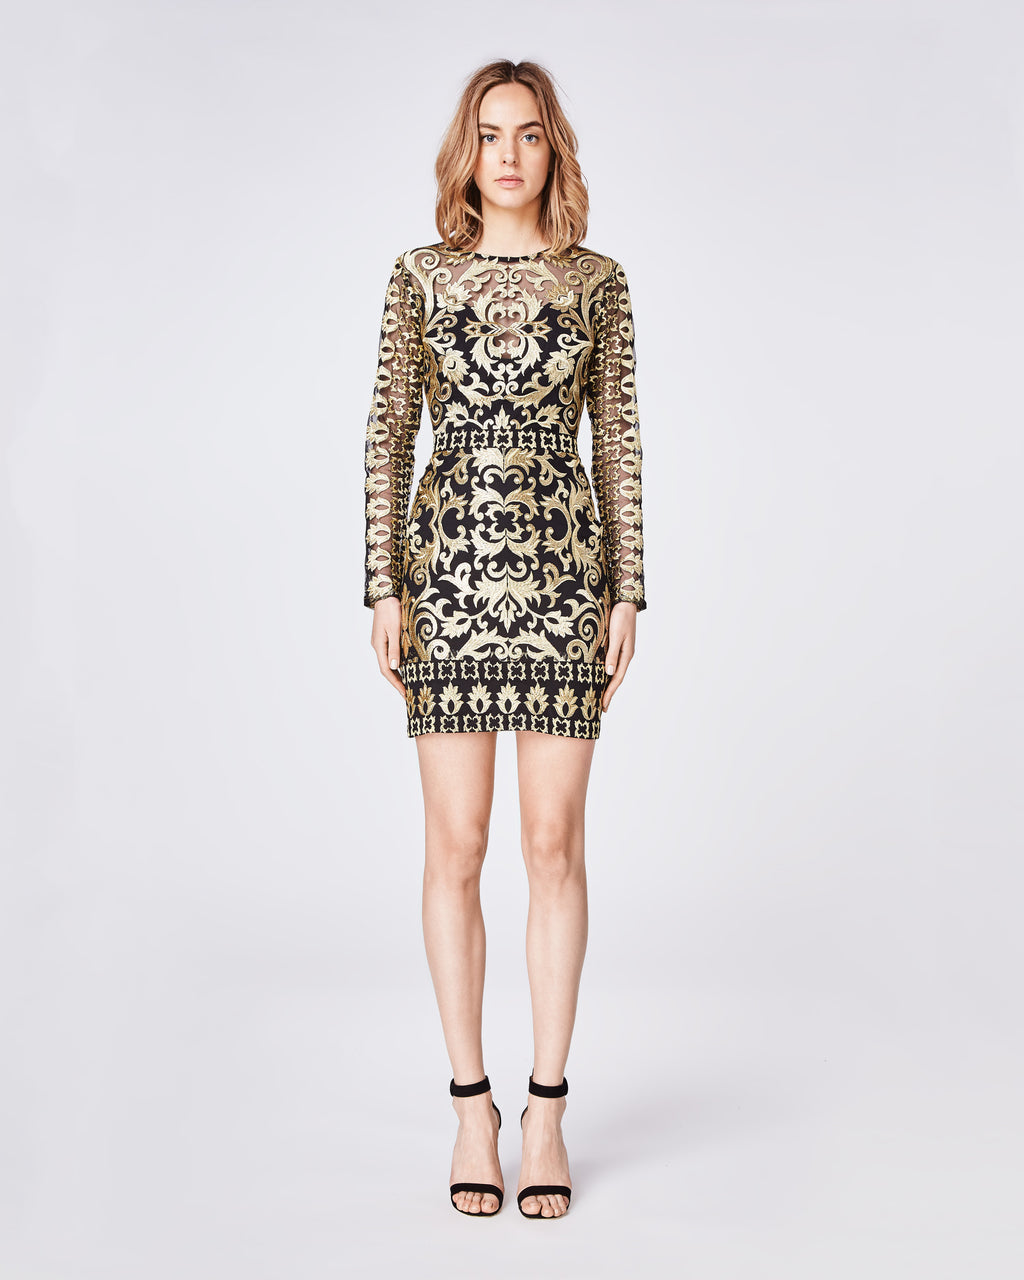 CF10267 - SCROLL EMBROIDERY LONG SLEEVE ILLUSION DRESS - dresses - short - Downtown rocker meets uptown chic in this structured, longsleeve statement dress. It feautures a center back concealed zipper with hook and eye closure.